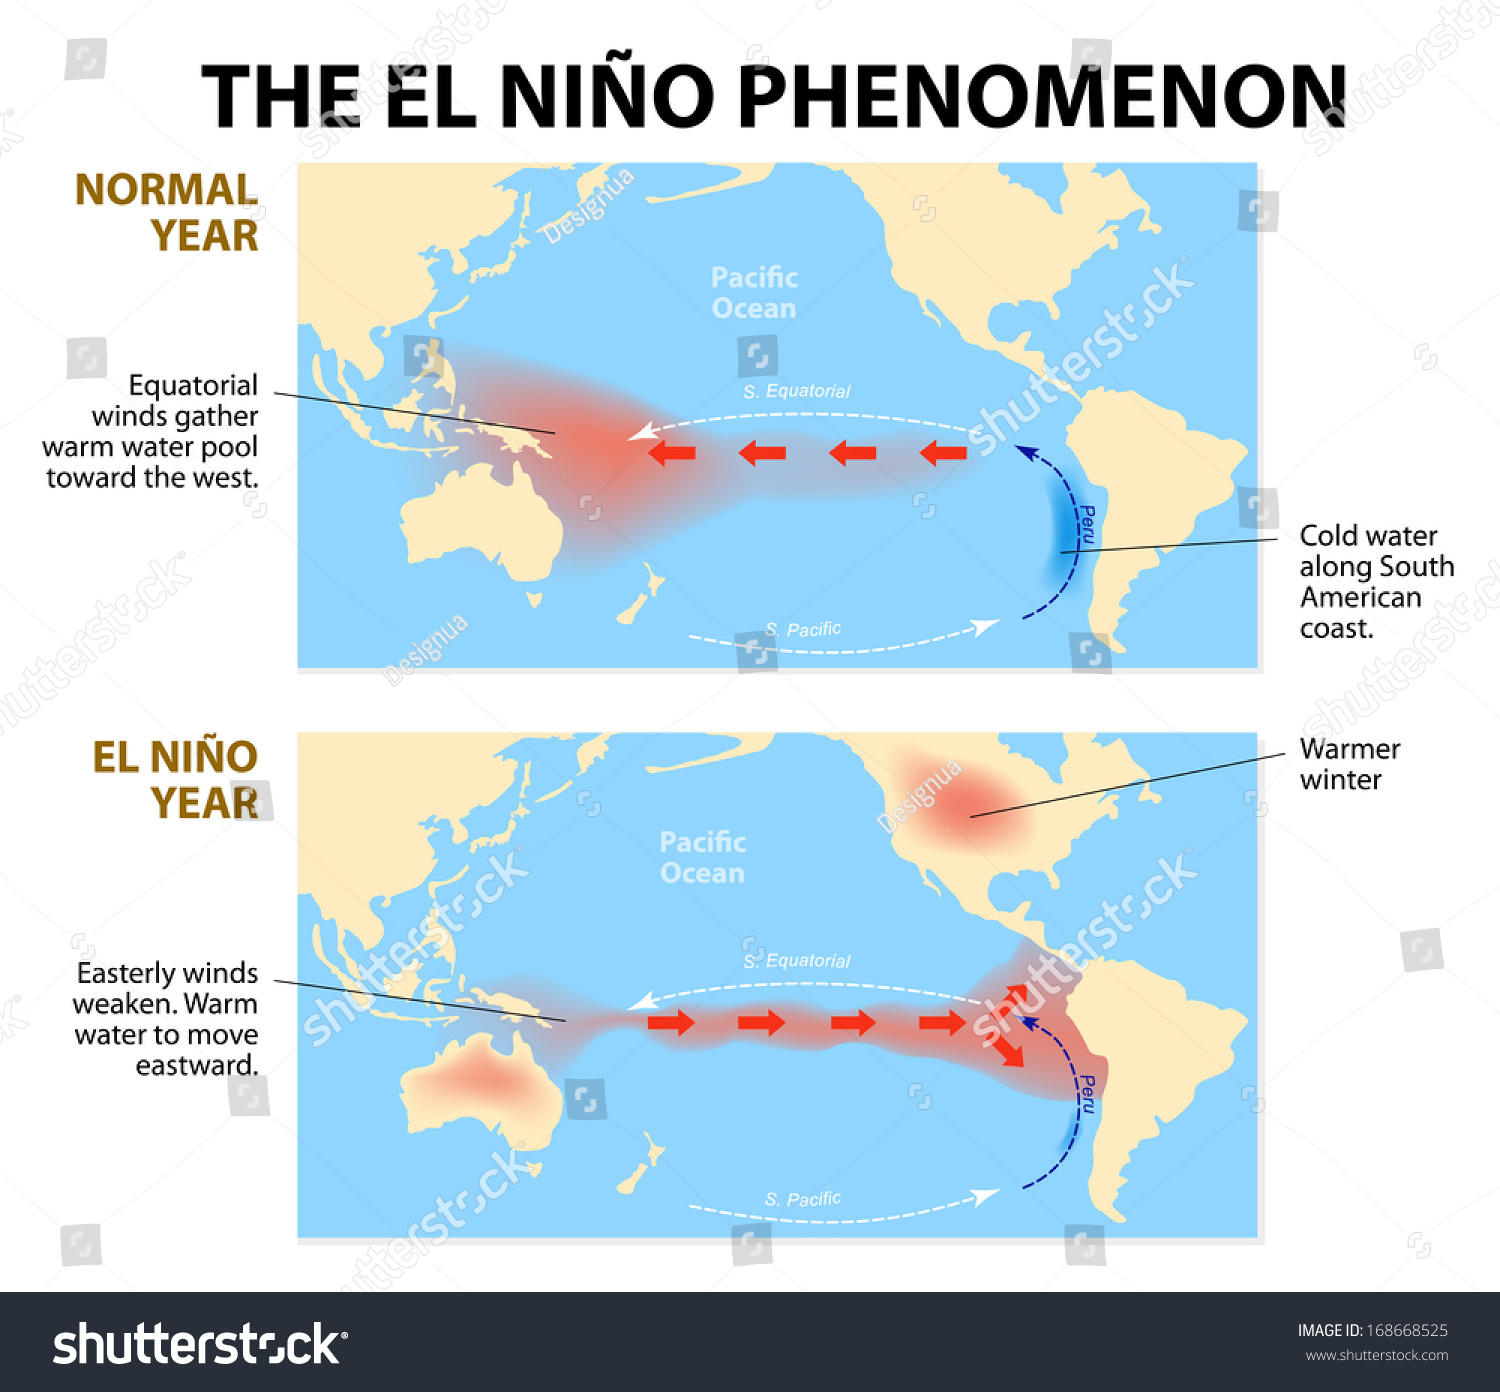 Diagram Shows El Nino Phenomenon El Stock Photo (Photo, Vector ...